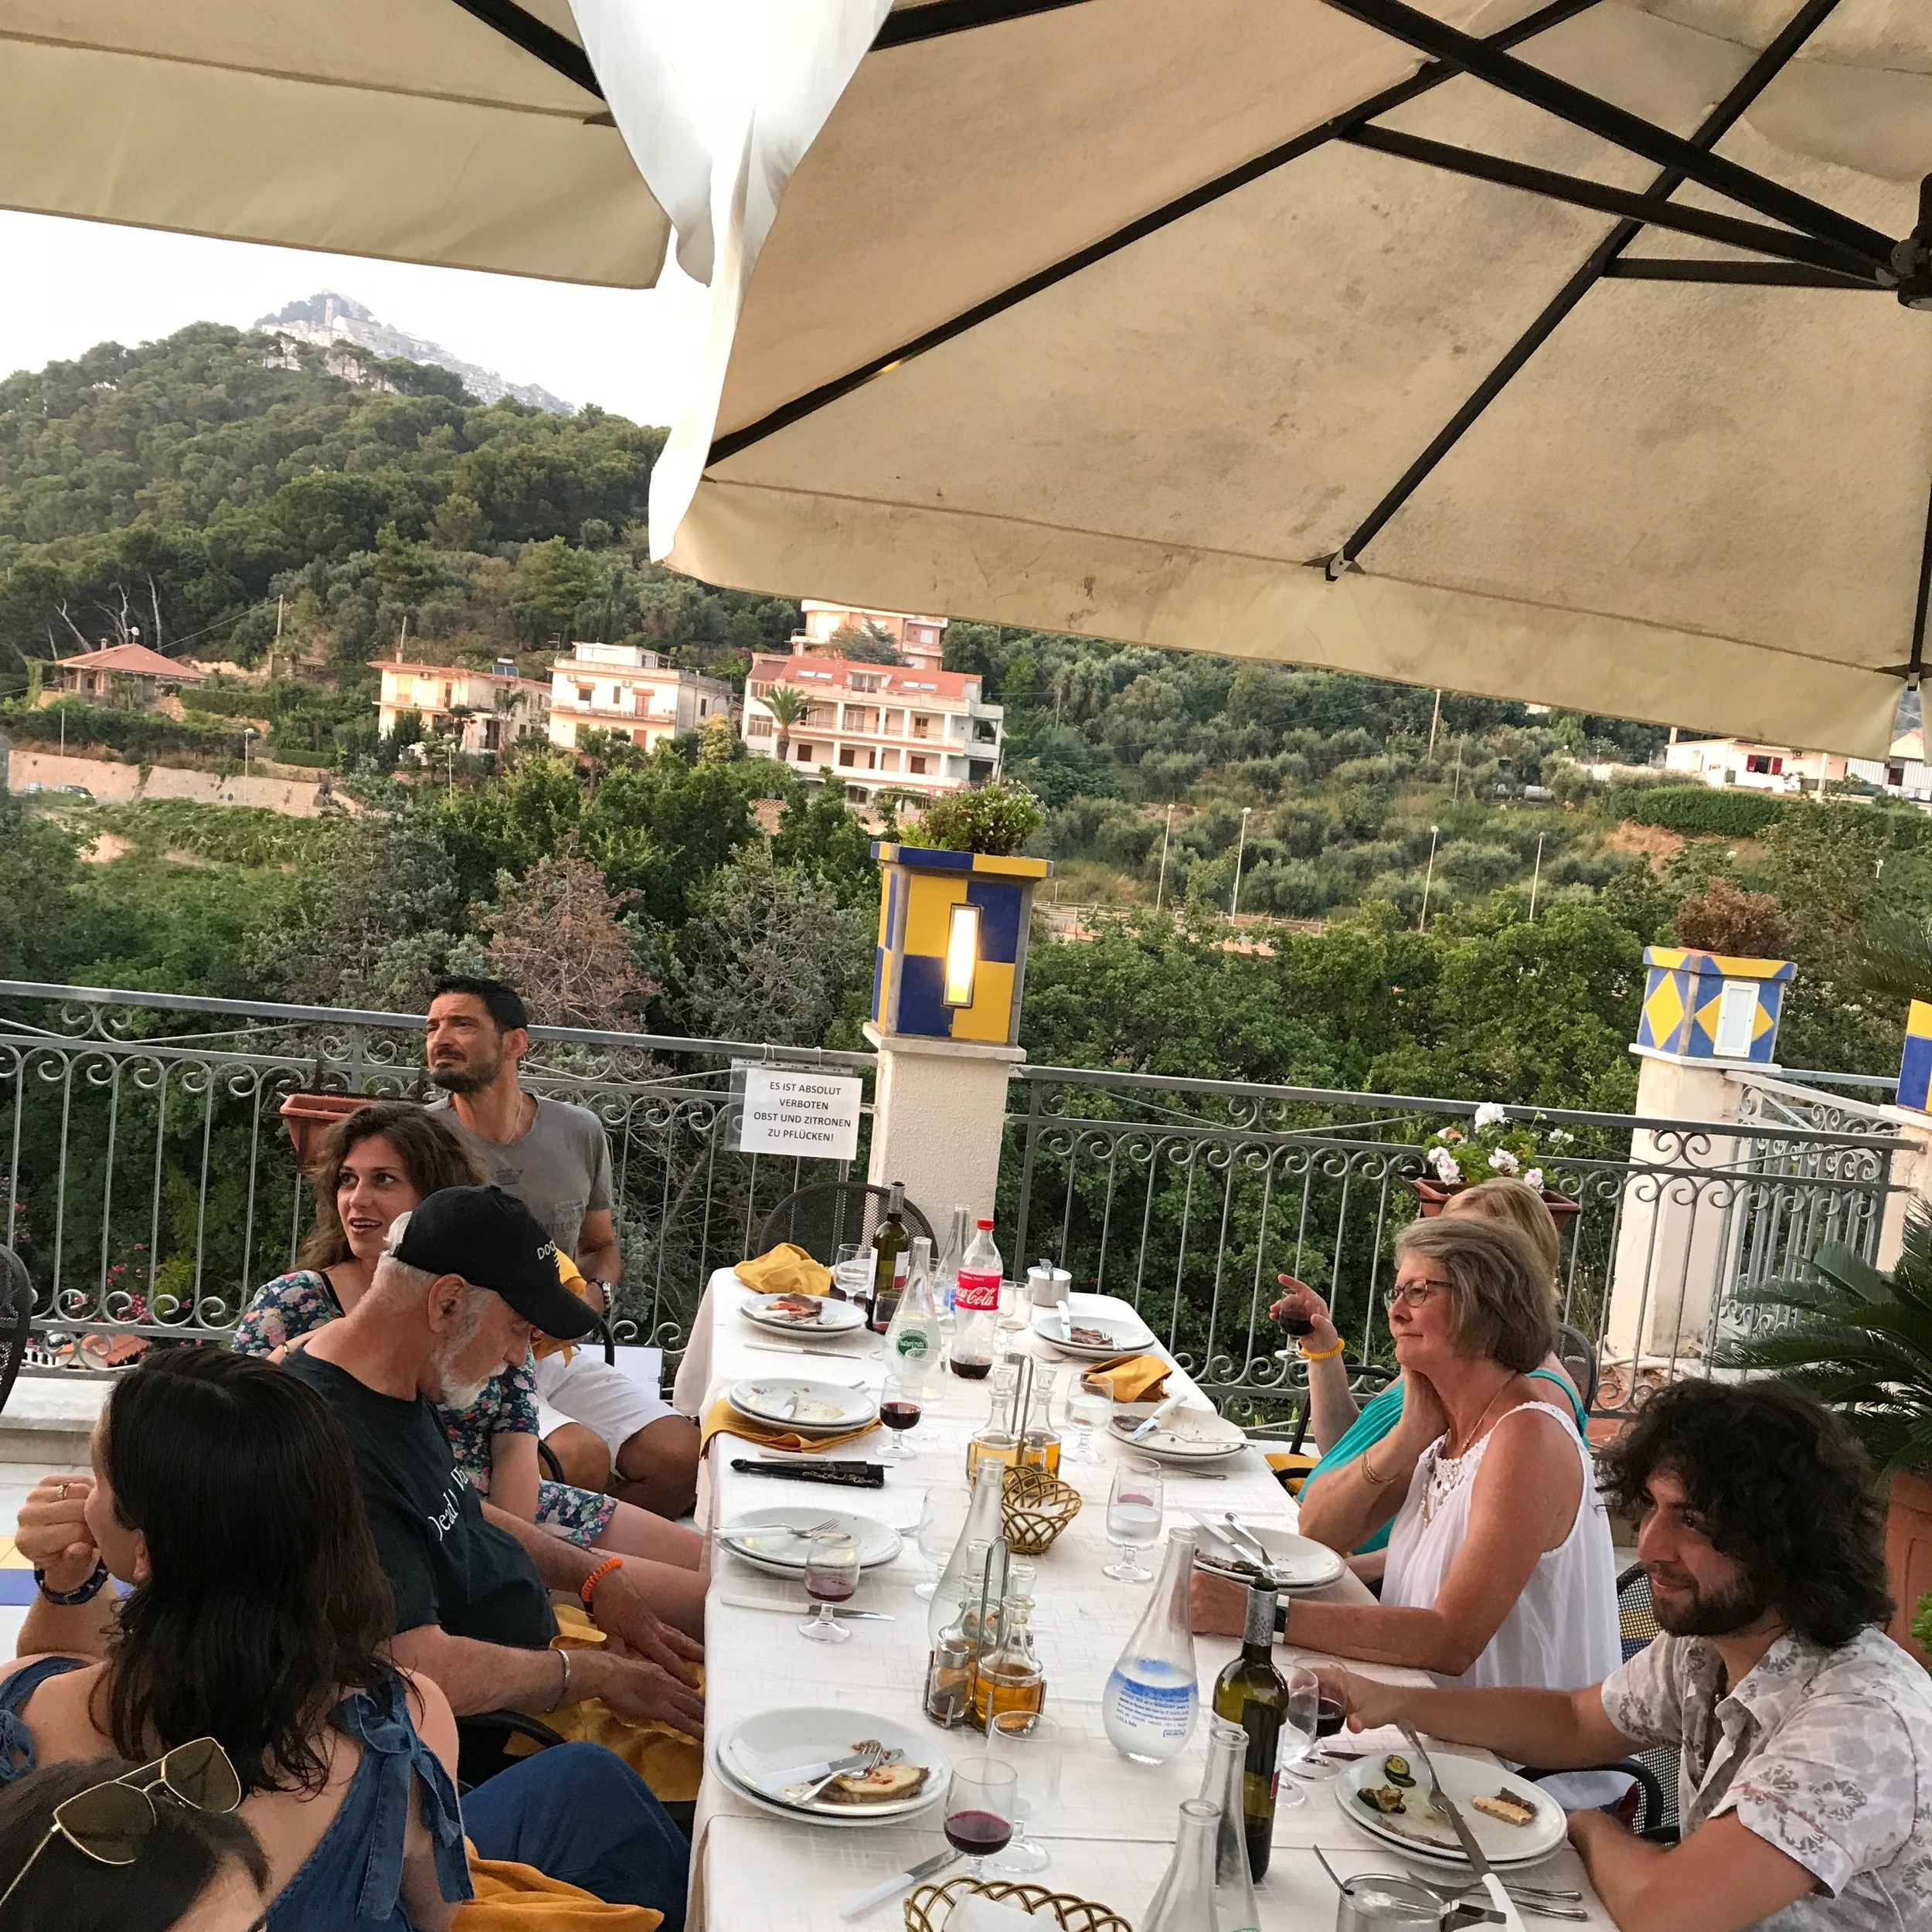 Alfresco dining at the Fondazione Passarelli overlooking the stunning Italian landscape.